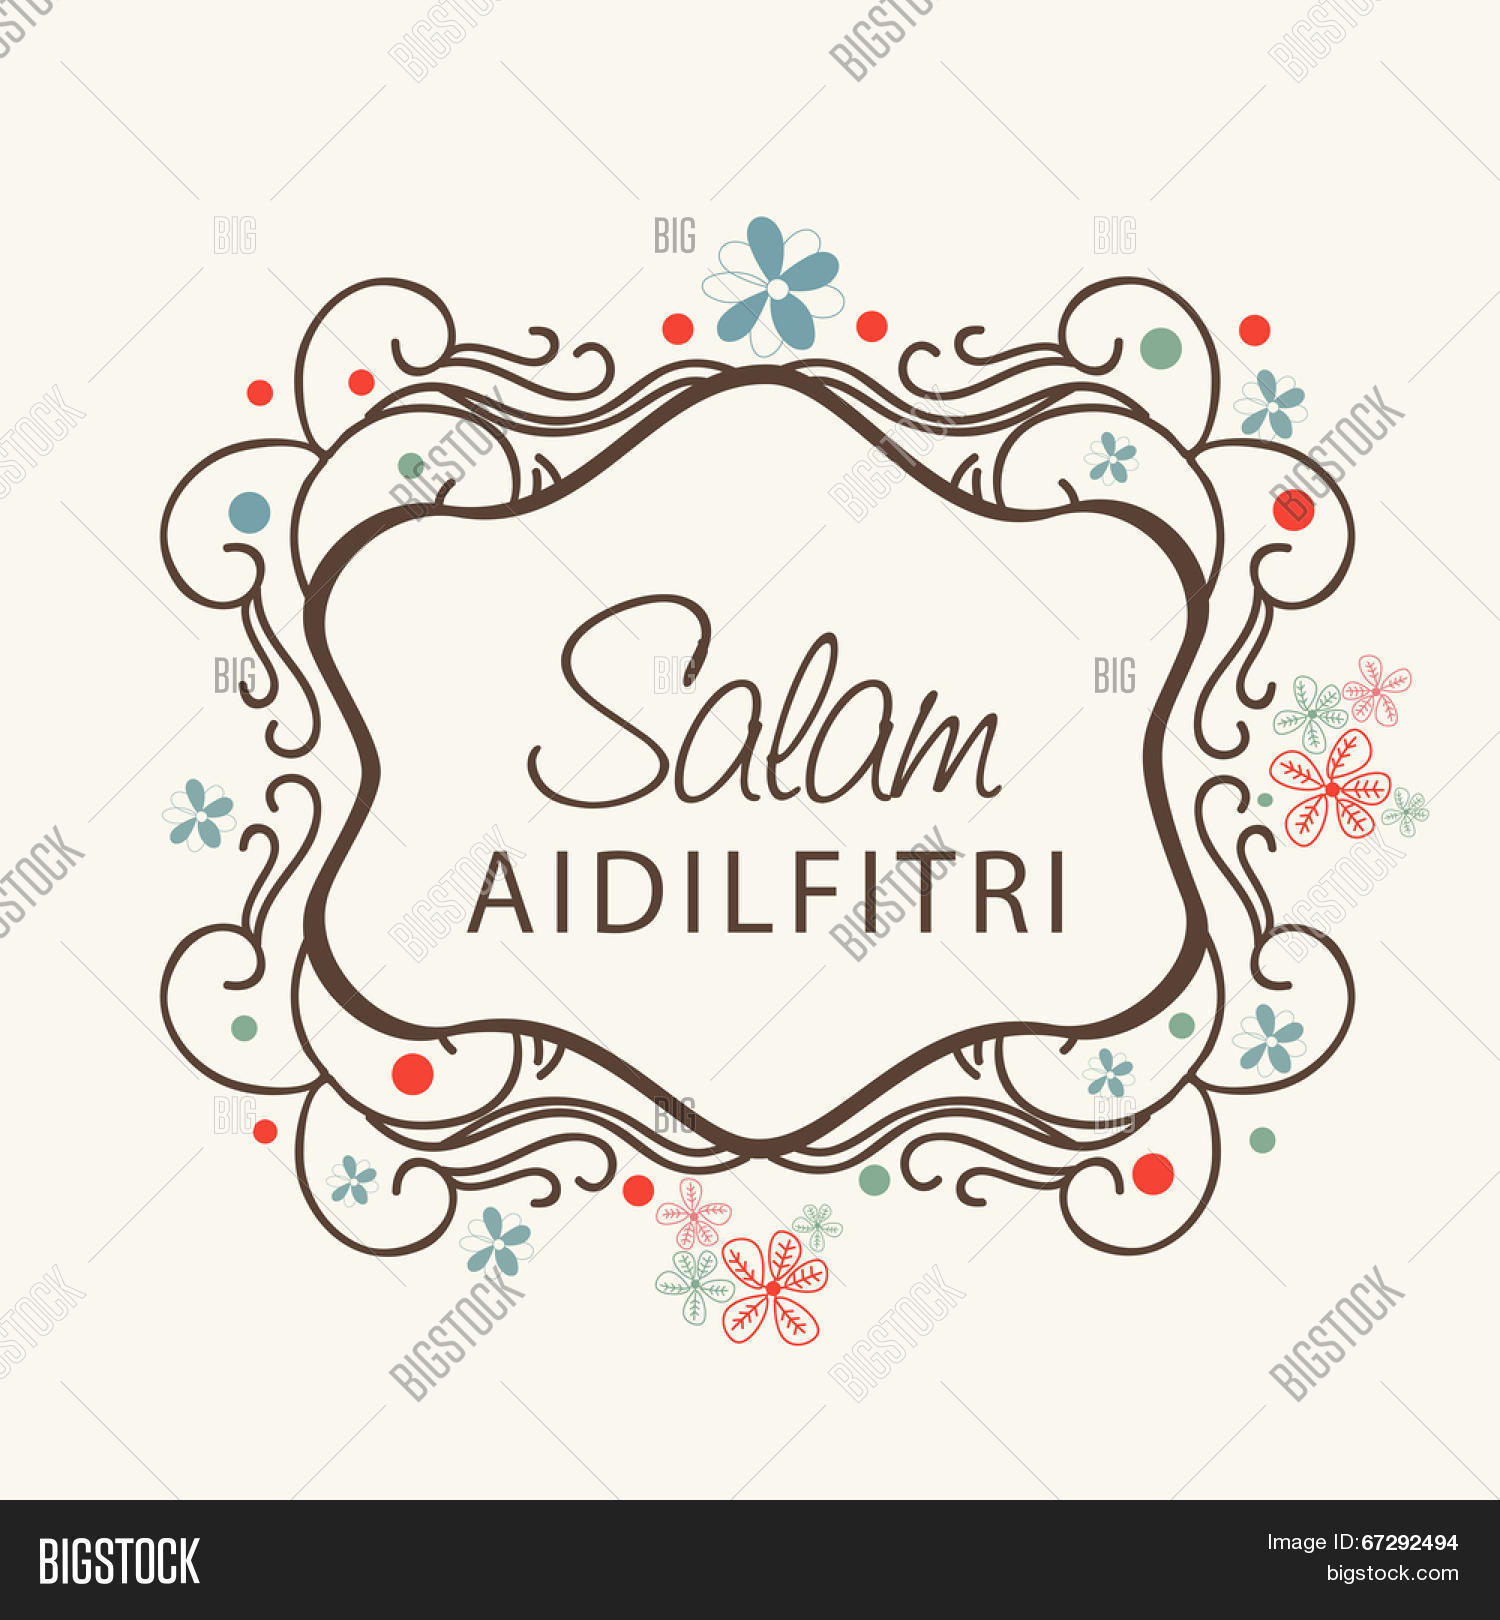 Stock Vector Beautiful Floral Decorated Frame With Stylish Text Salam Aidilfitri On Beige Background For Muslim Community Festival Eid Mubarak Celebrations on Small A Frame Plans